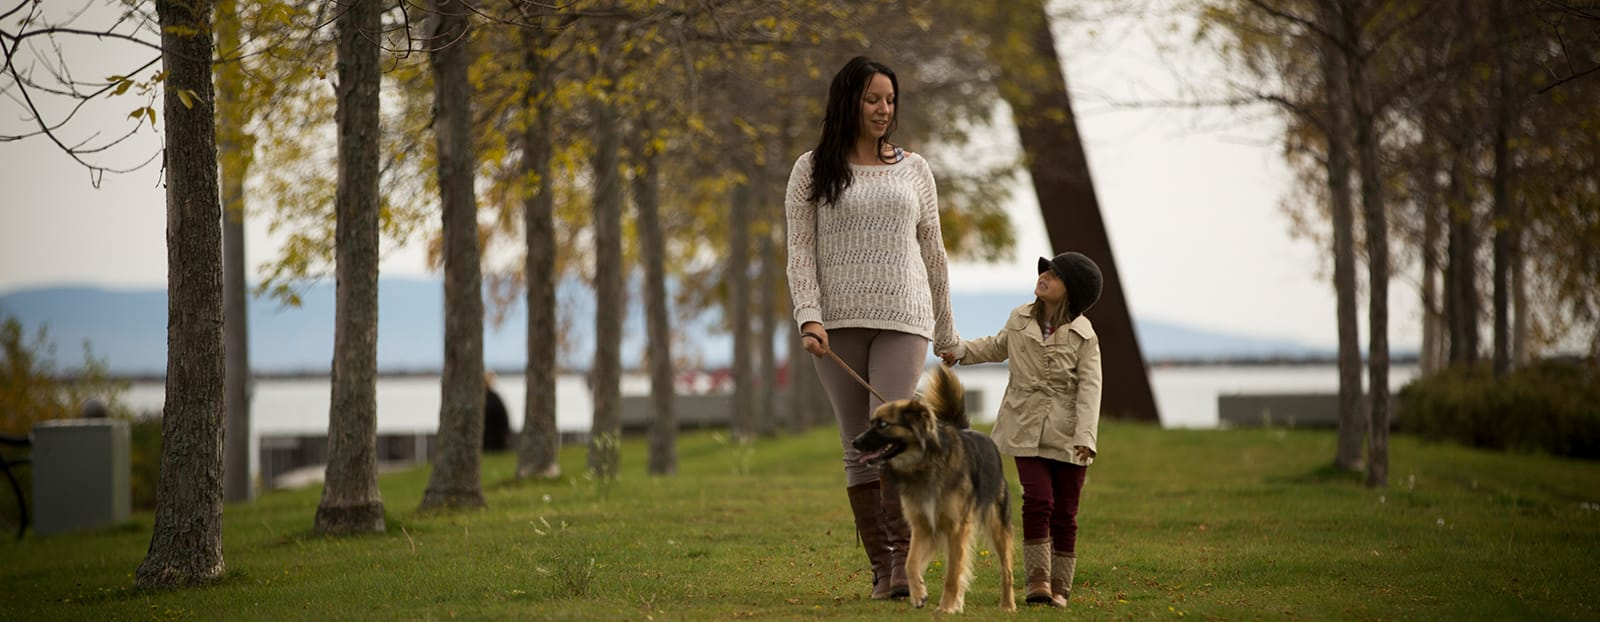 mother and daughter walking with dog